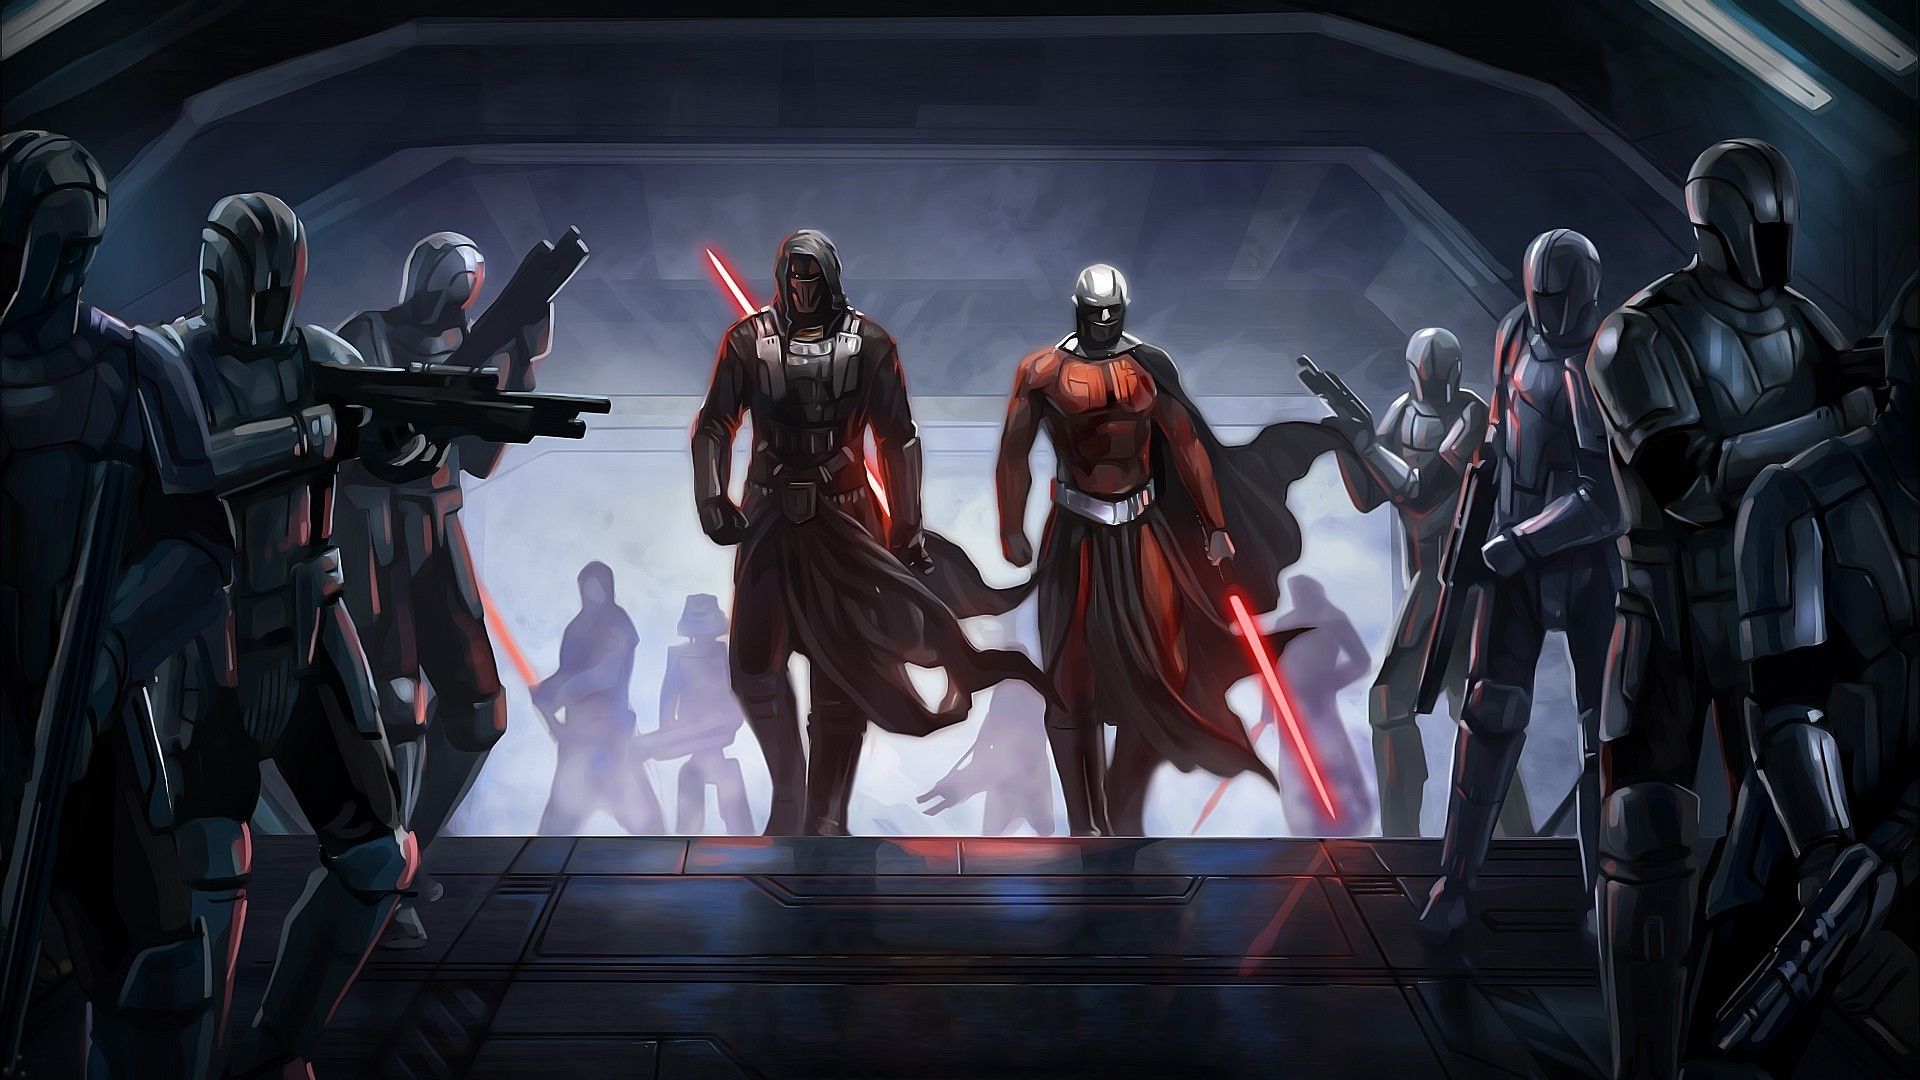 1920x1080 Star Wars Old Republic Wallpaper